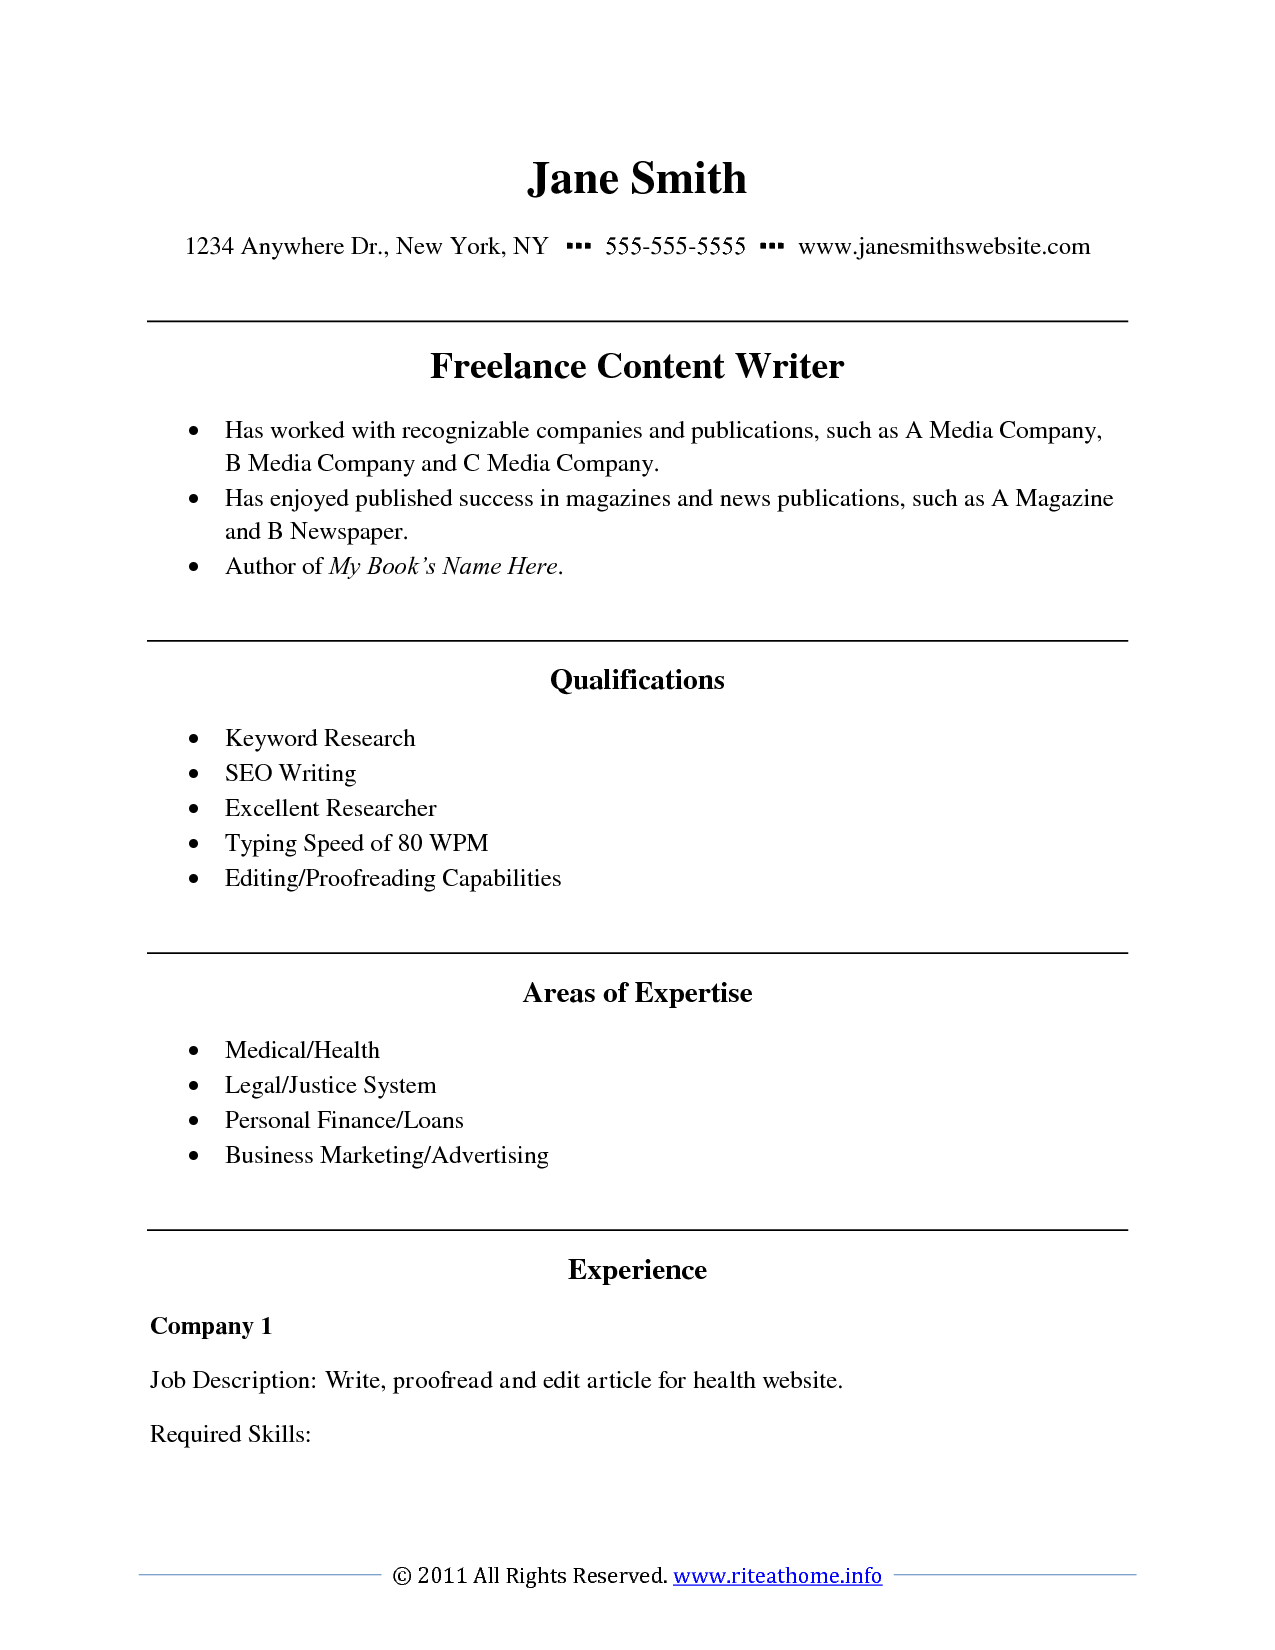 resume writing examples sample resumes hdwriting a resume cover letter examples - Resume Preparation Service